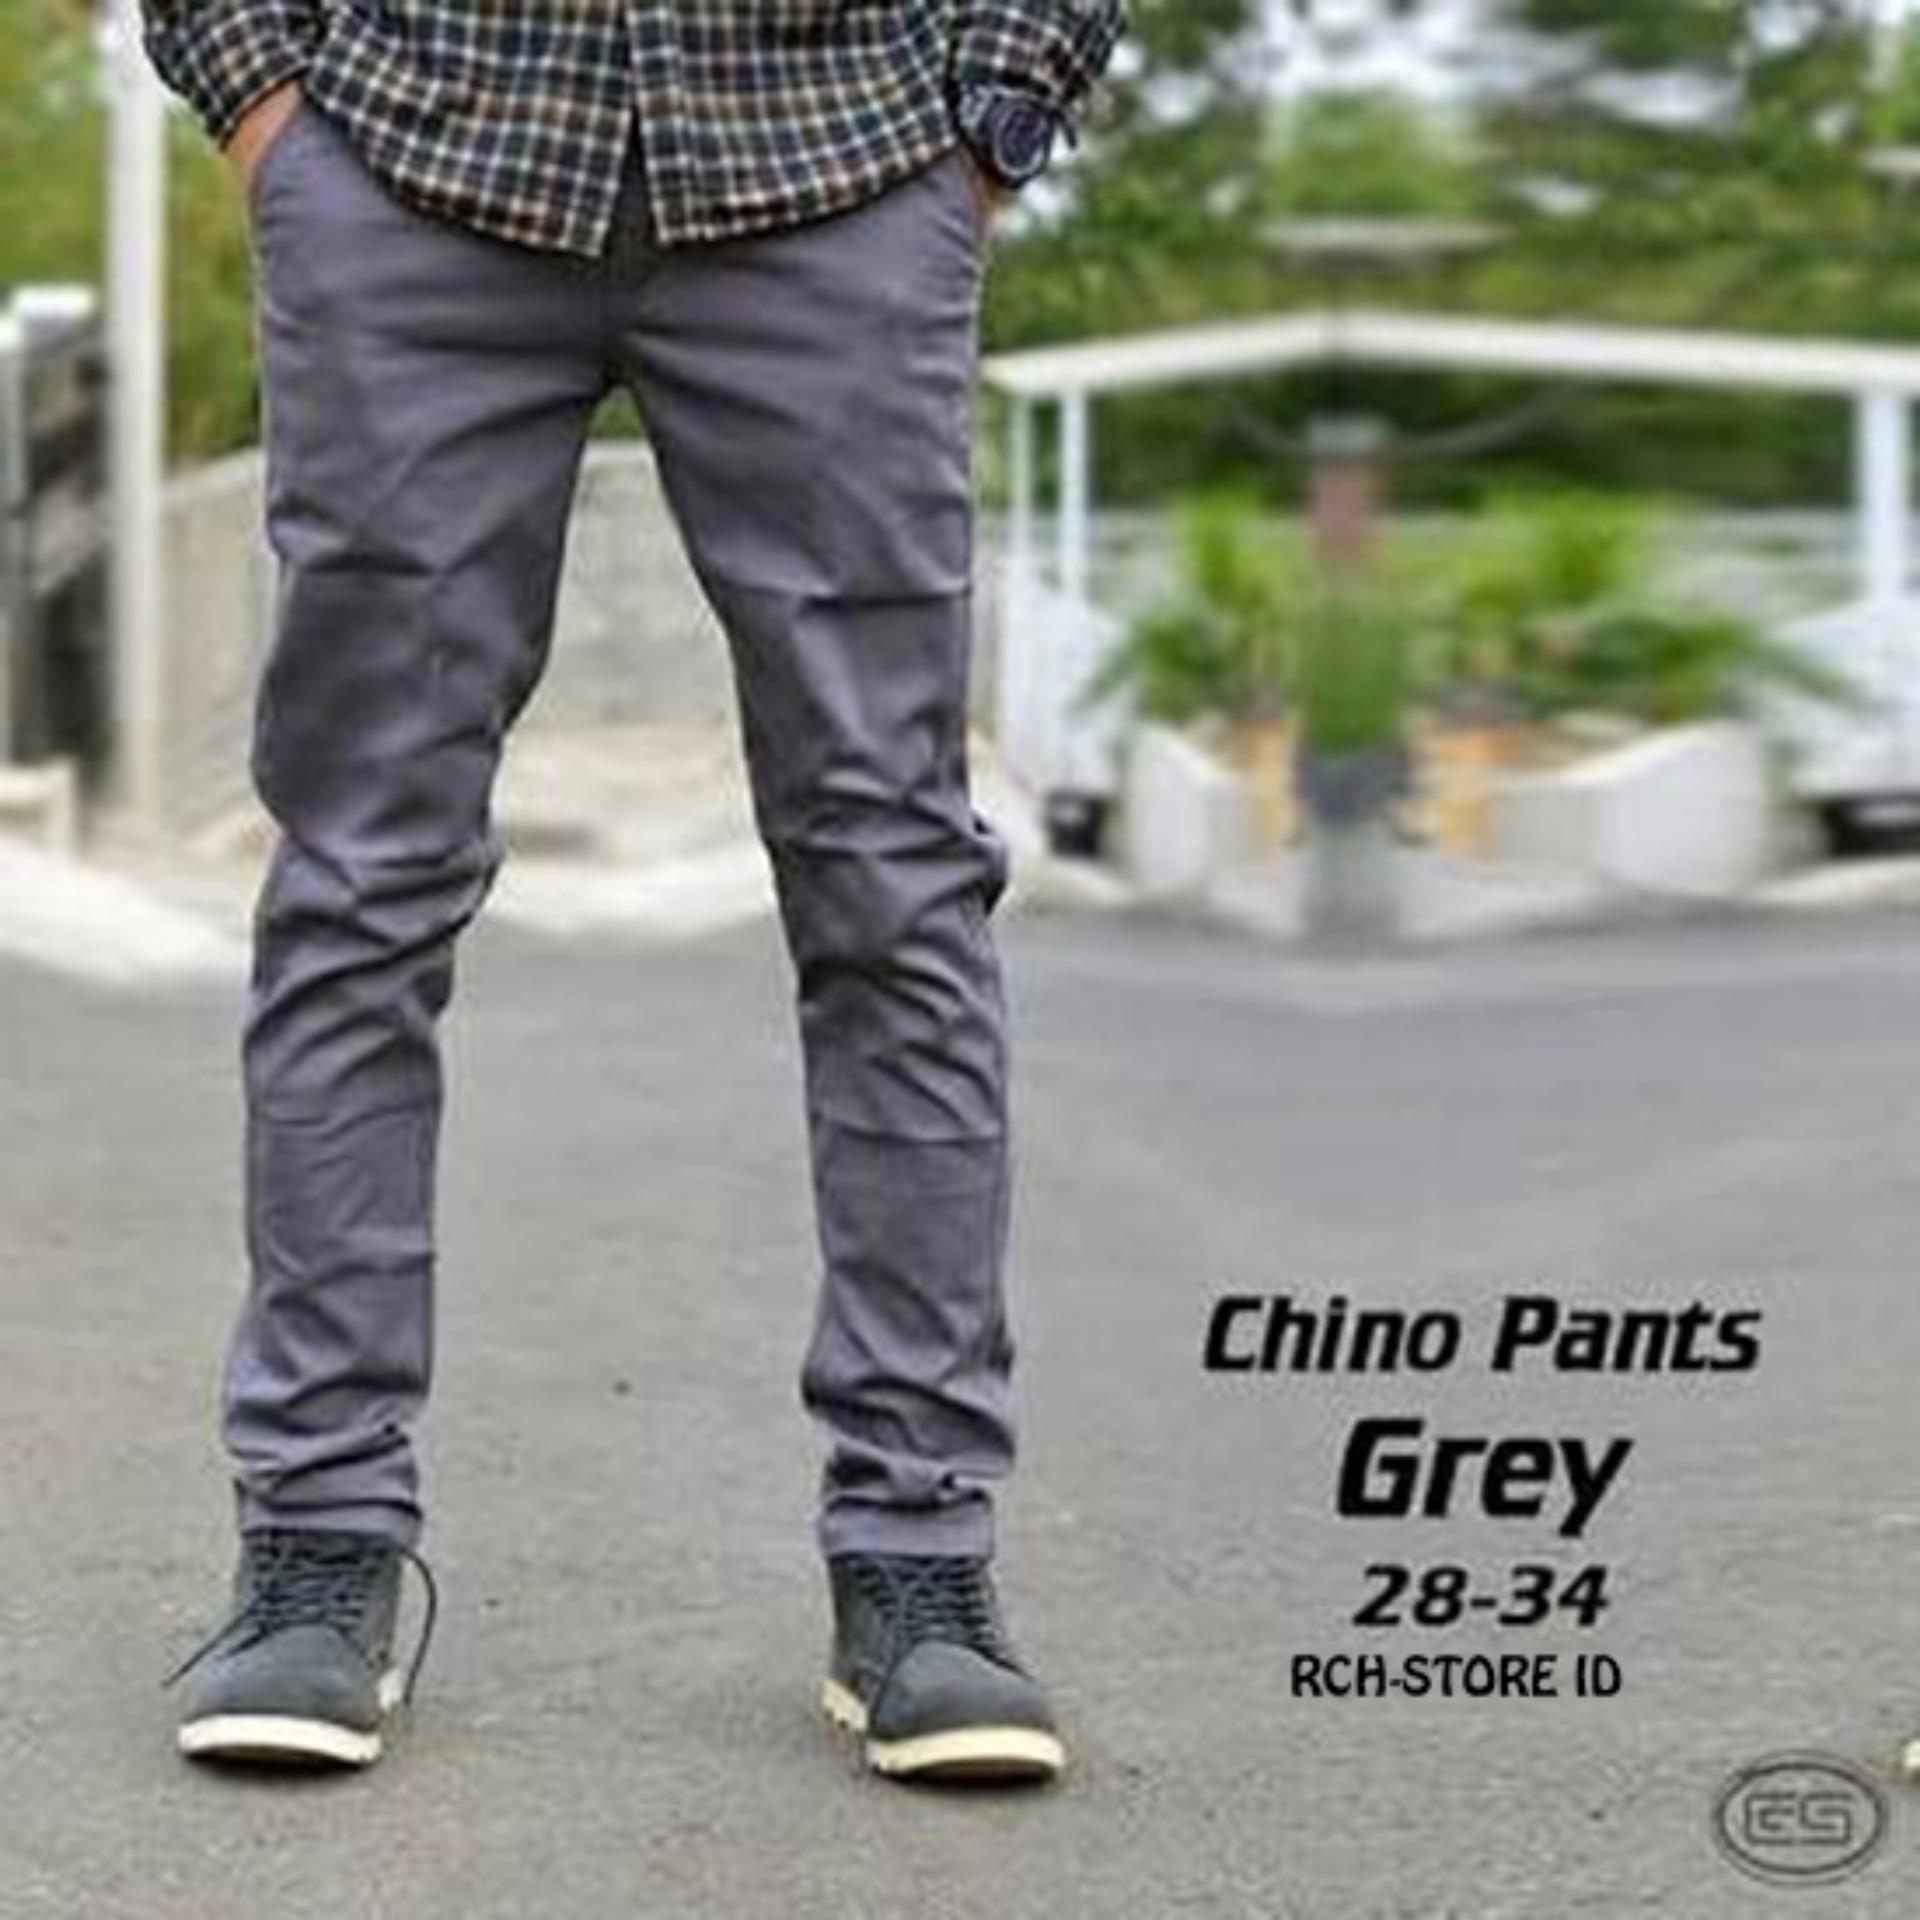 Chino Pants Skinny Grey Pria Premium Best Seller Bms Clothing Diskon 50